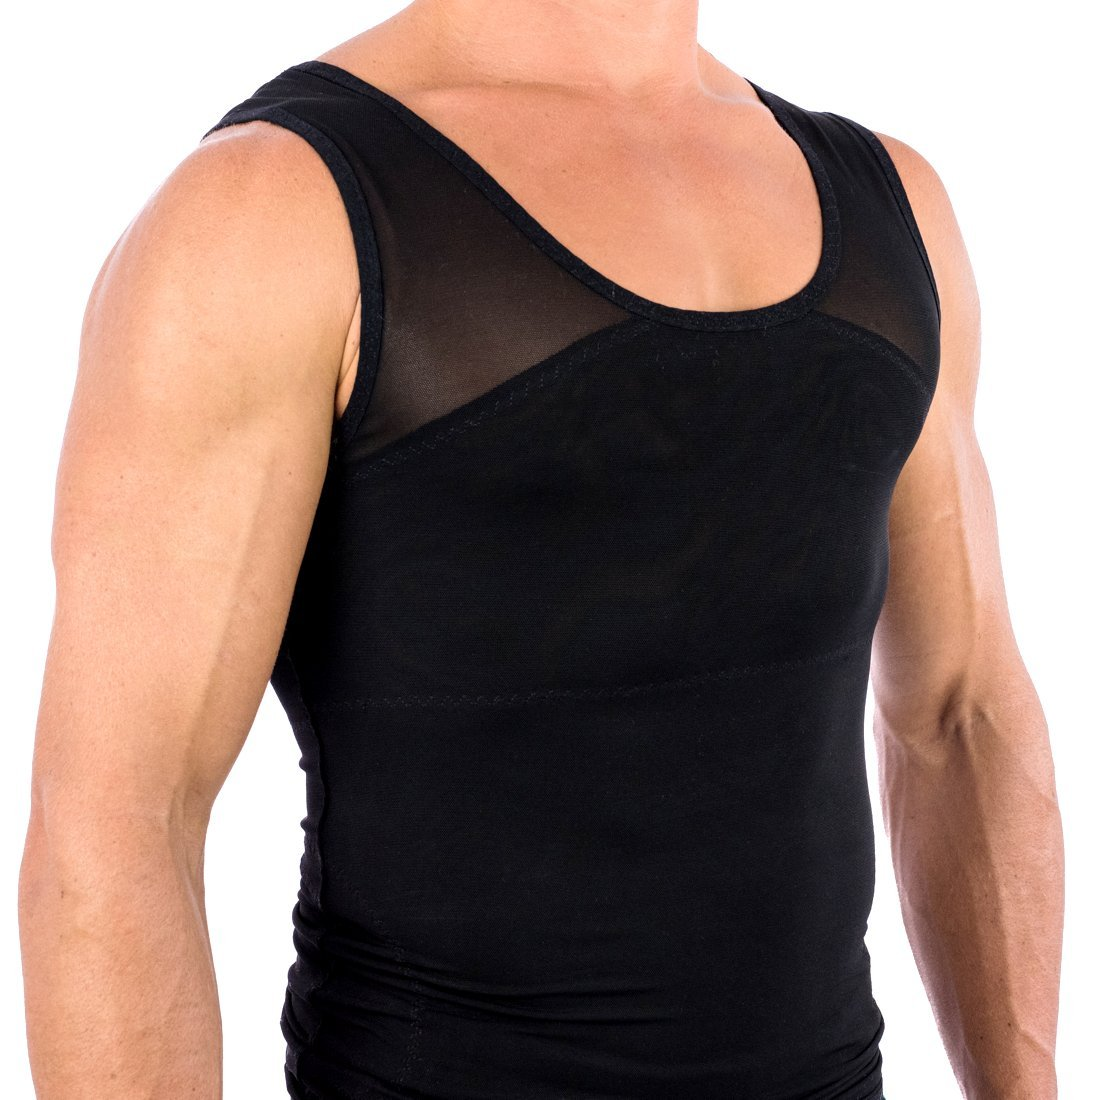 d70f093e02916 Does not lose its compression elasticity. Our men s tank top girdle binder  is designed to provide a slim looking chest underneath any ...